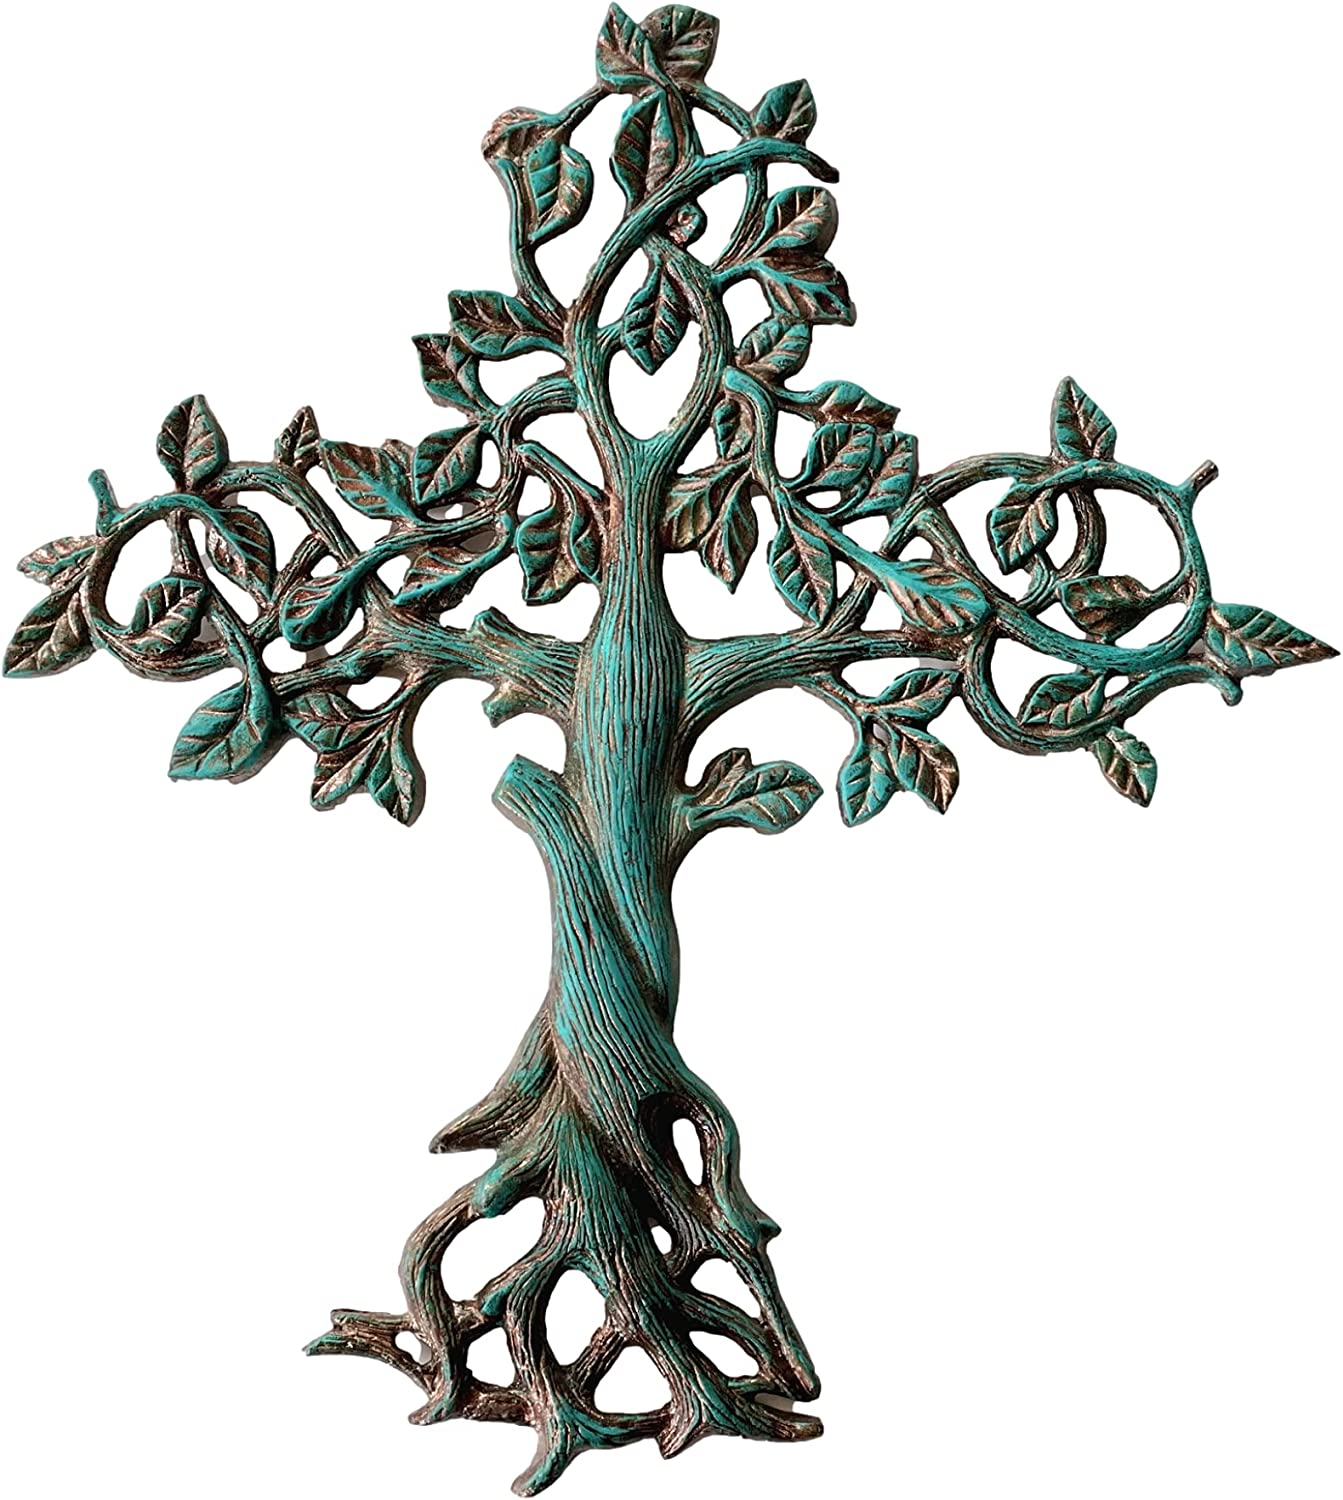 Decorative Tree of Life Metal Wall Cross Spiritual Decorations For Home - Religious Hanging Cross Wall Decor, Best For Home And As A Gift - Handmade Patina Finish Wall Art, 14.25